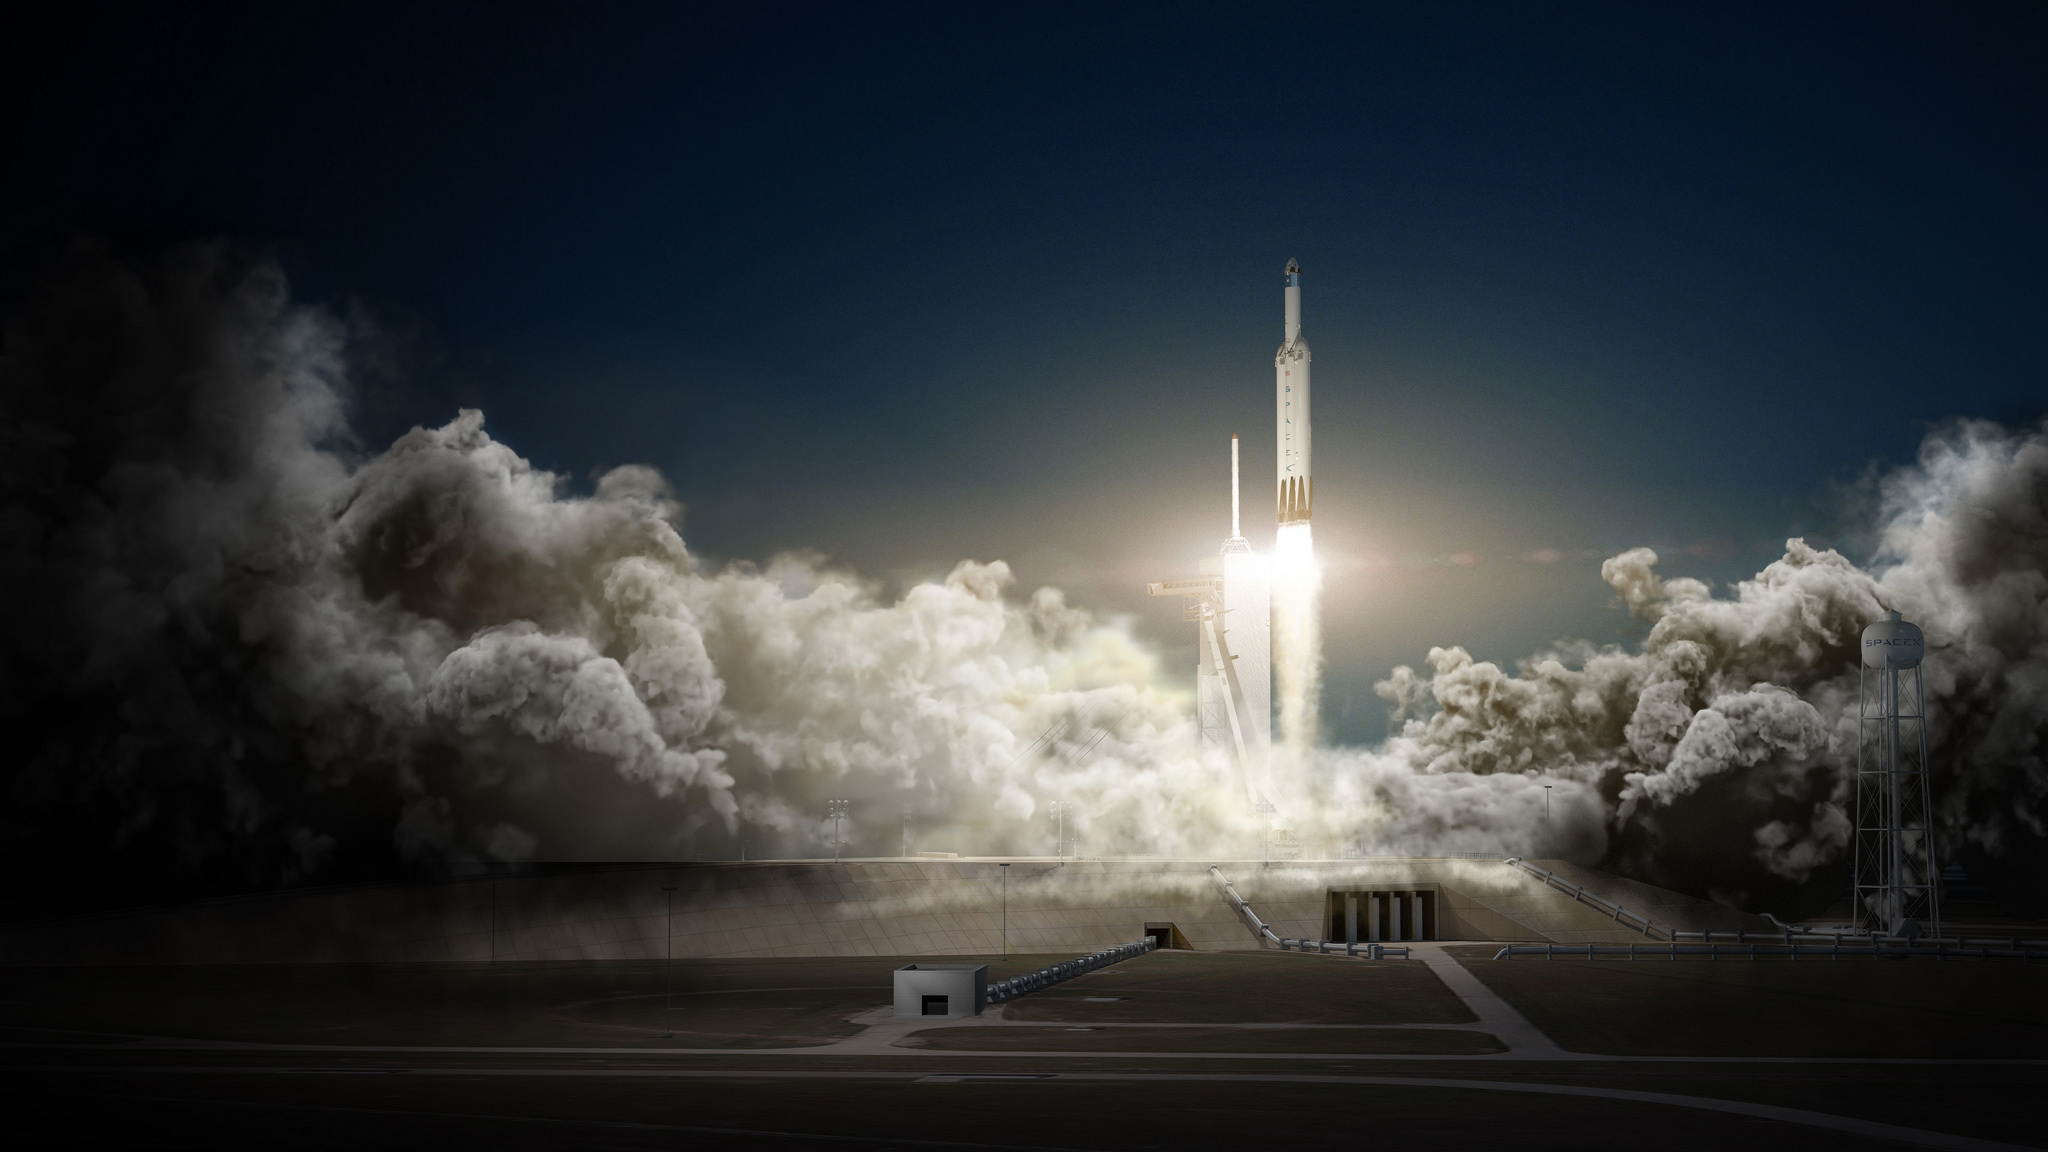 Is 2017 the year the Falcon Heavy finally takes flight?